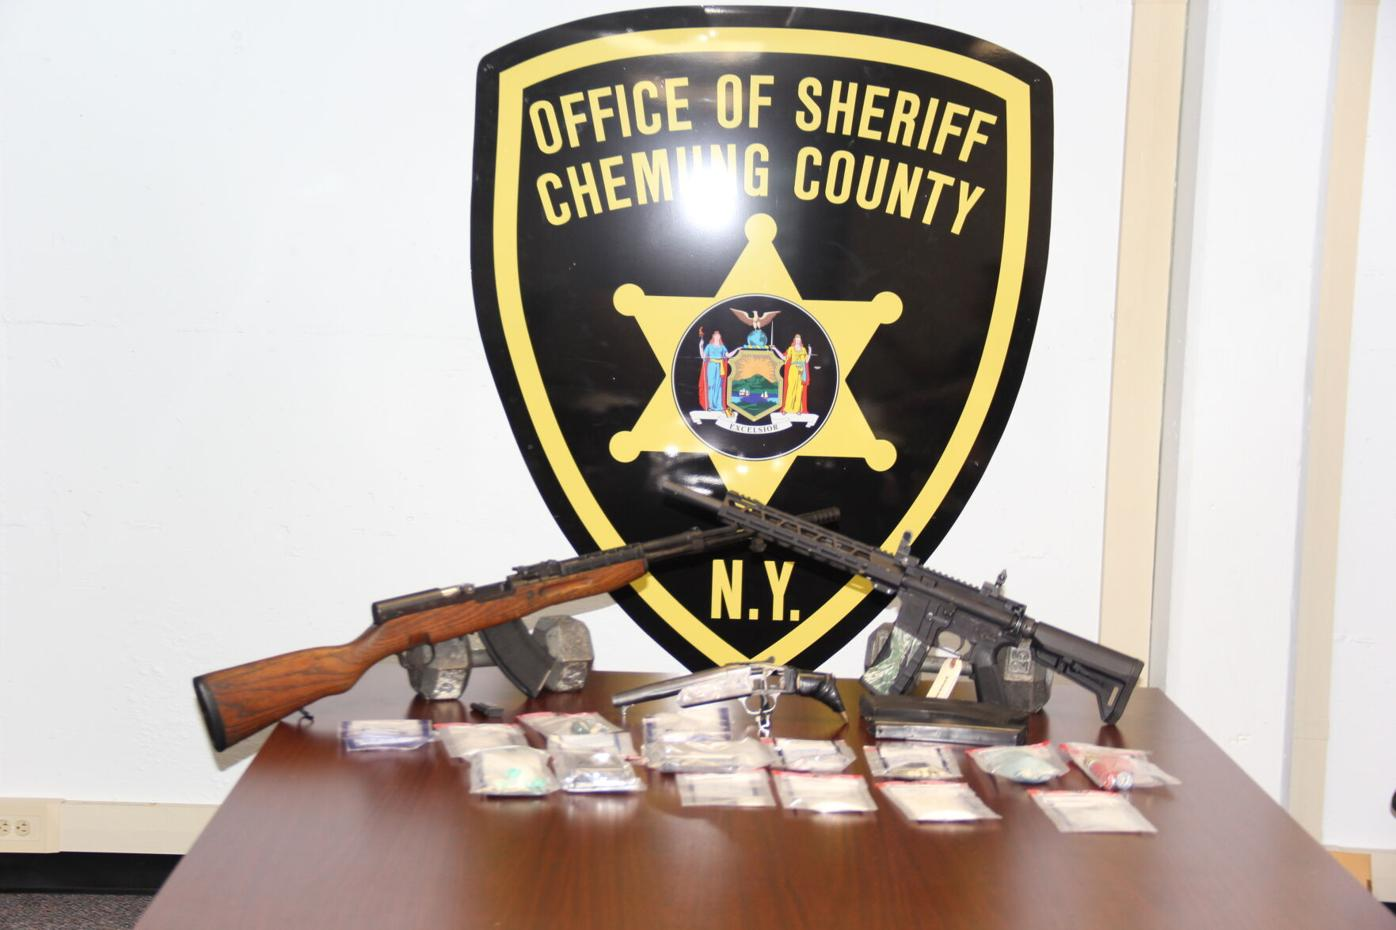 The Chemung County Sheriff's Office arrested Michael S. Goodwin of Southport after Deputies discovered 50 grams of methamphetamine, a quantity of psilocybin mushrooms, an AR-15 assault rifle and a large capacity, ammunition feeding device in his vehicle.